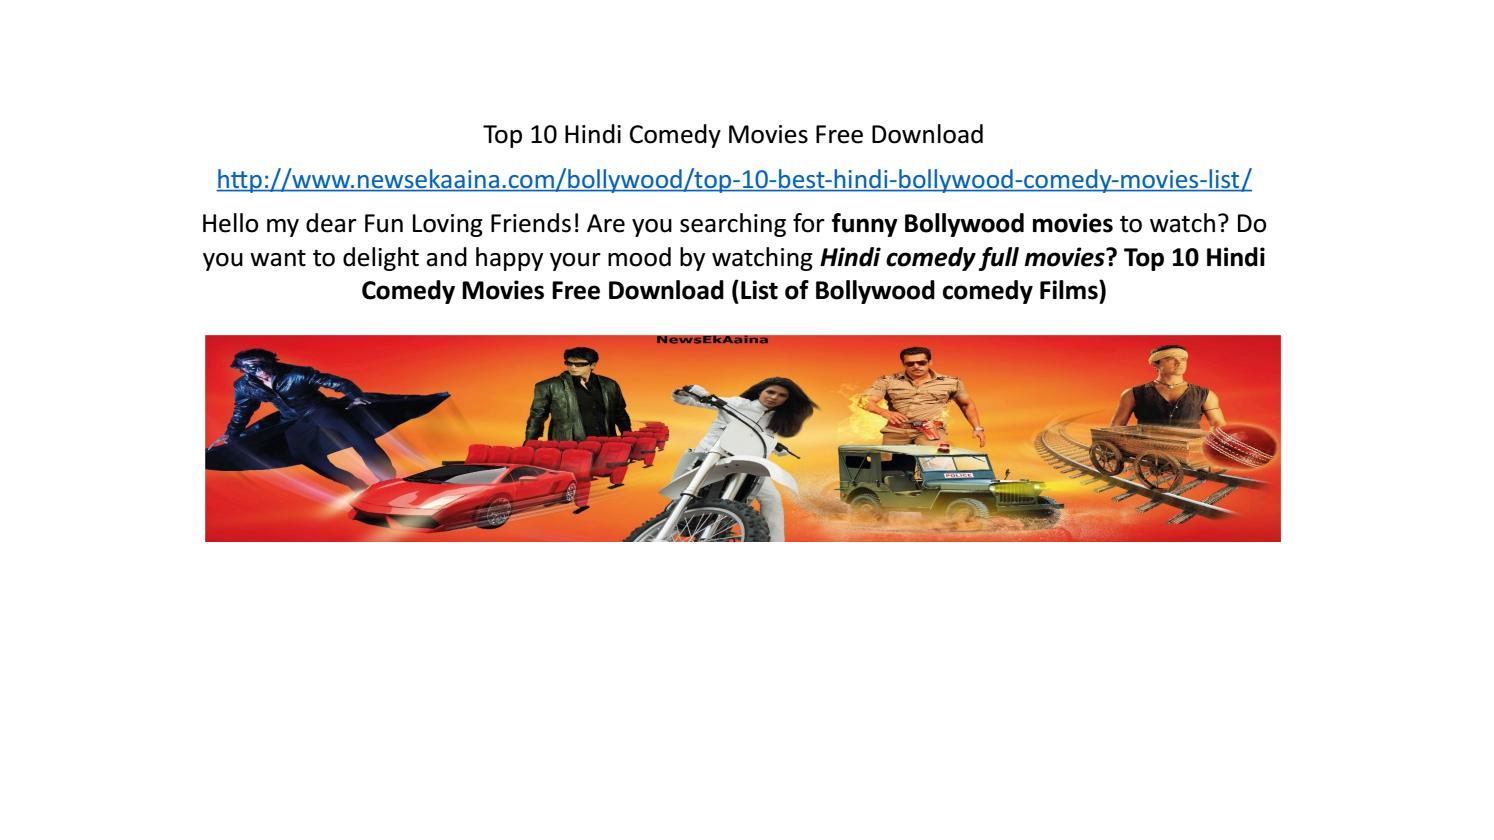 Top 10 Hindi Comedy Movies Free Download by aniket - issuu